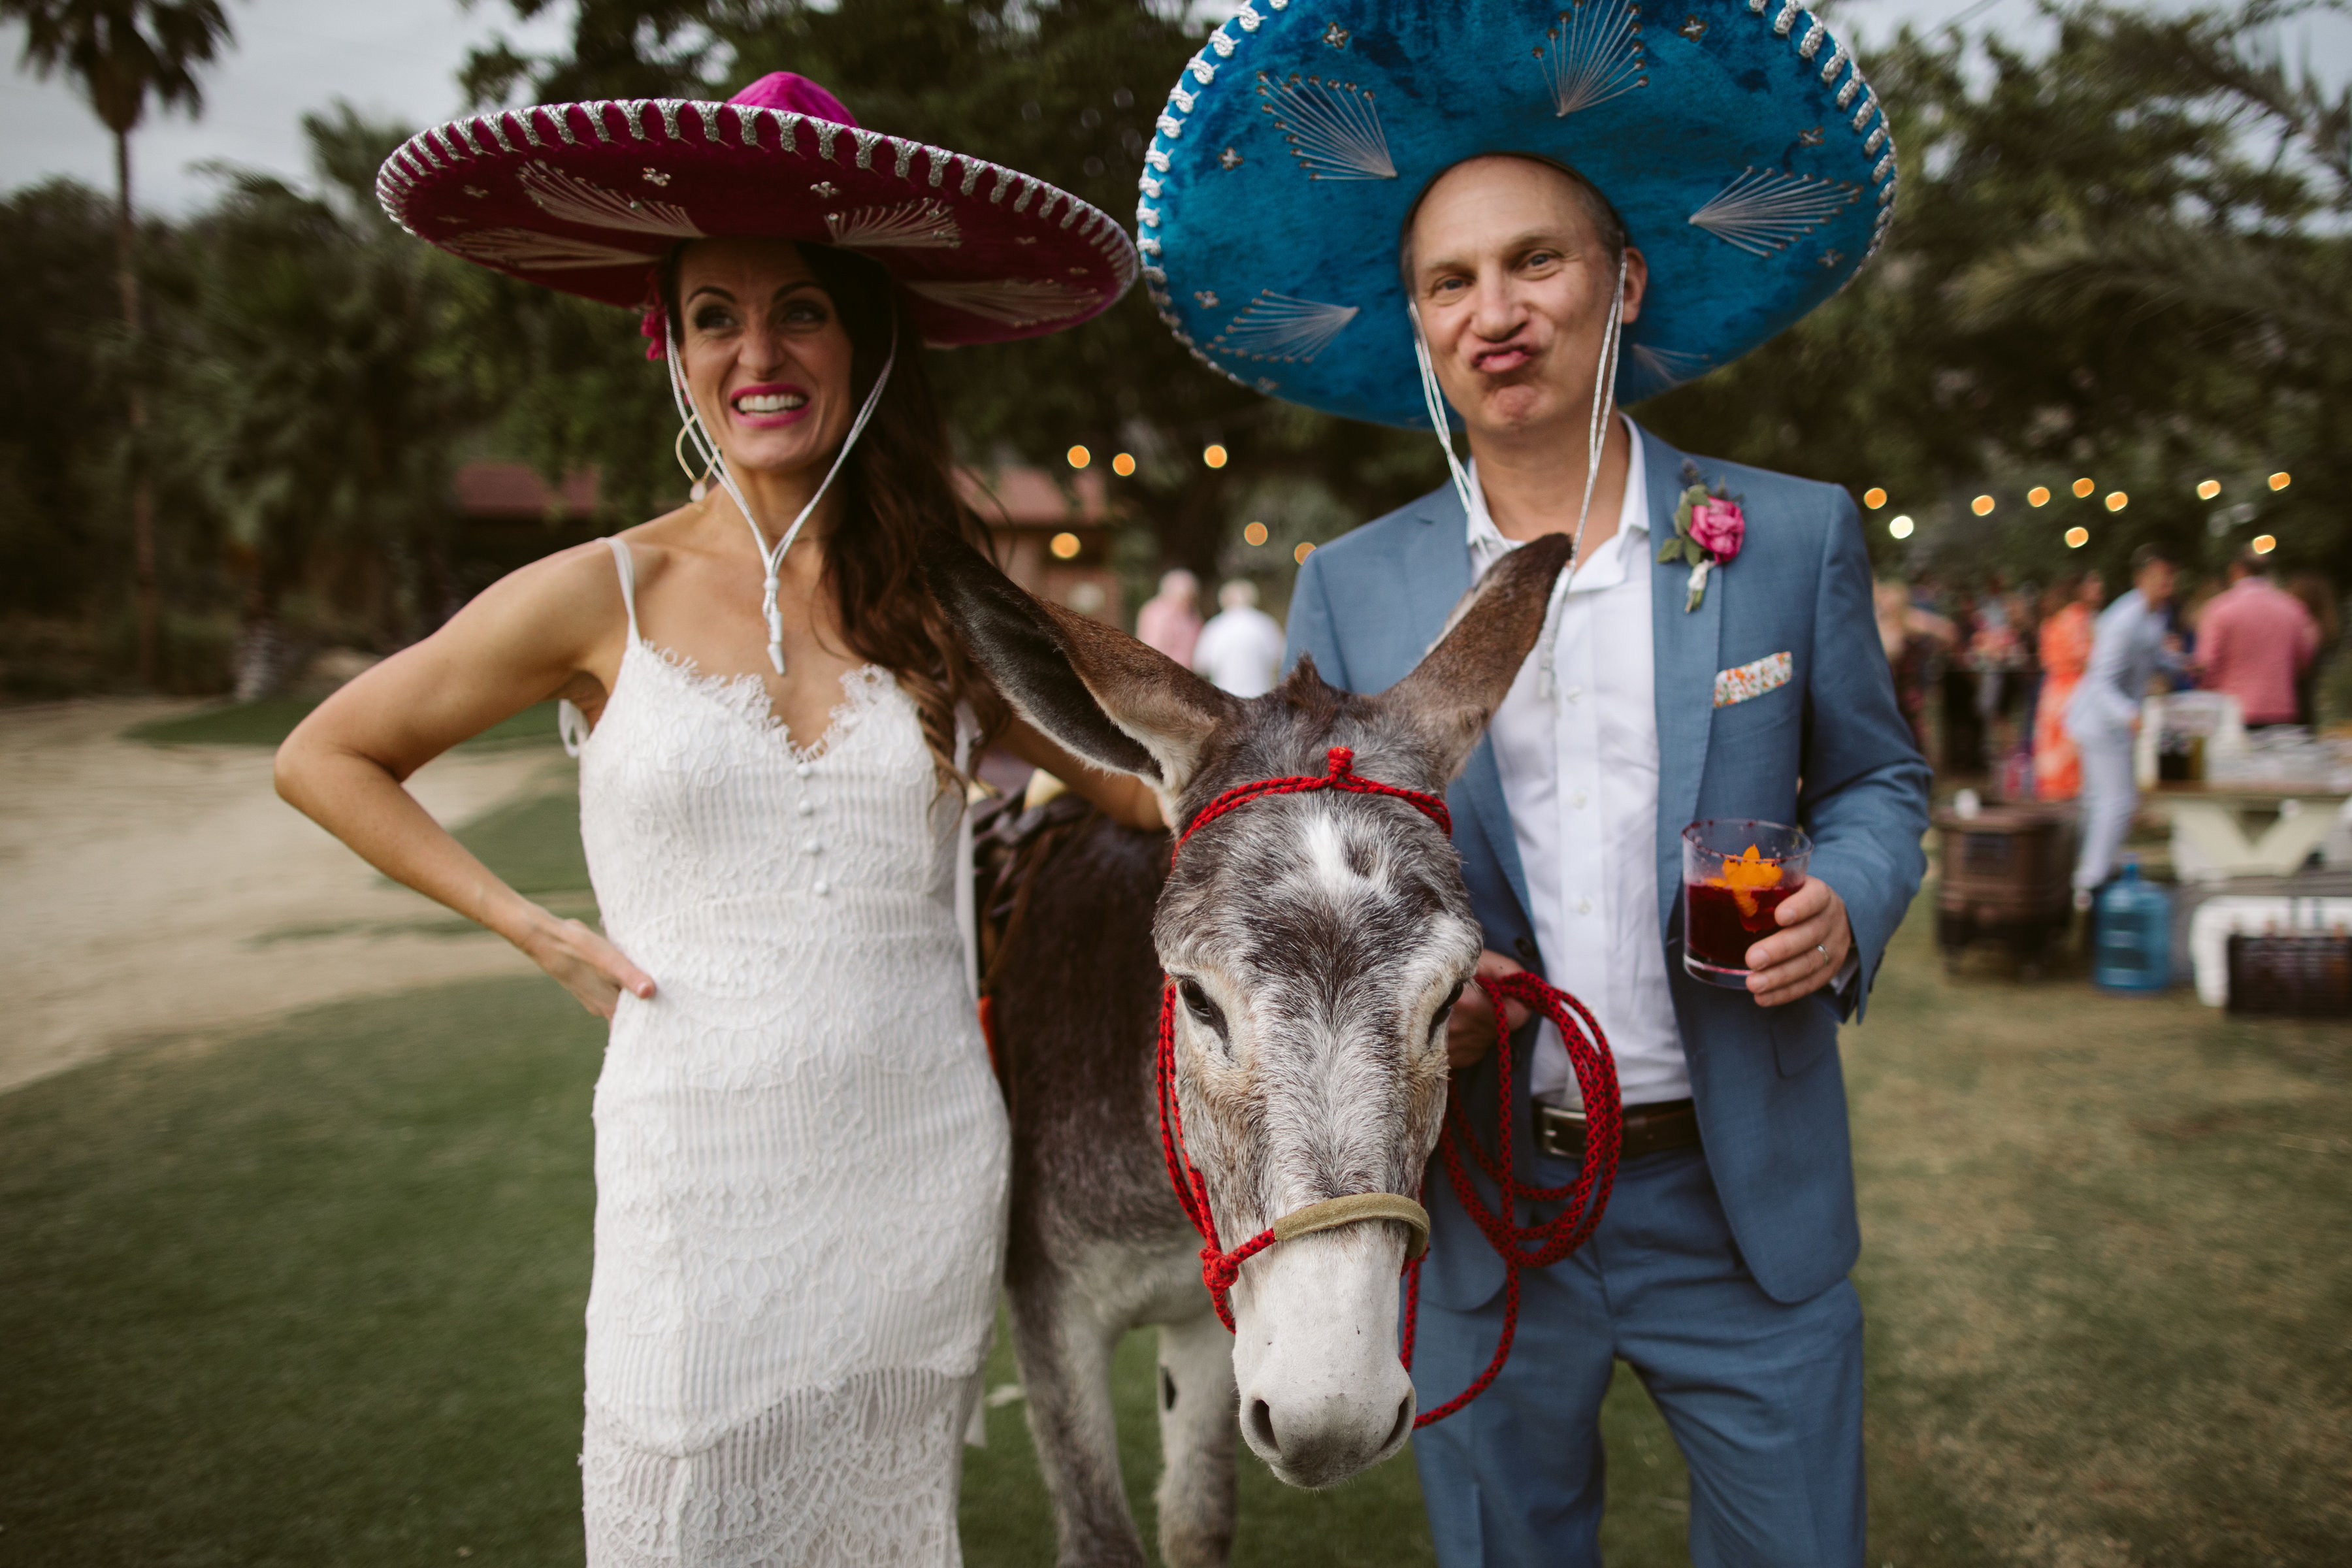 a friendly donkey arrives at a Mexican themed wedding